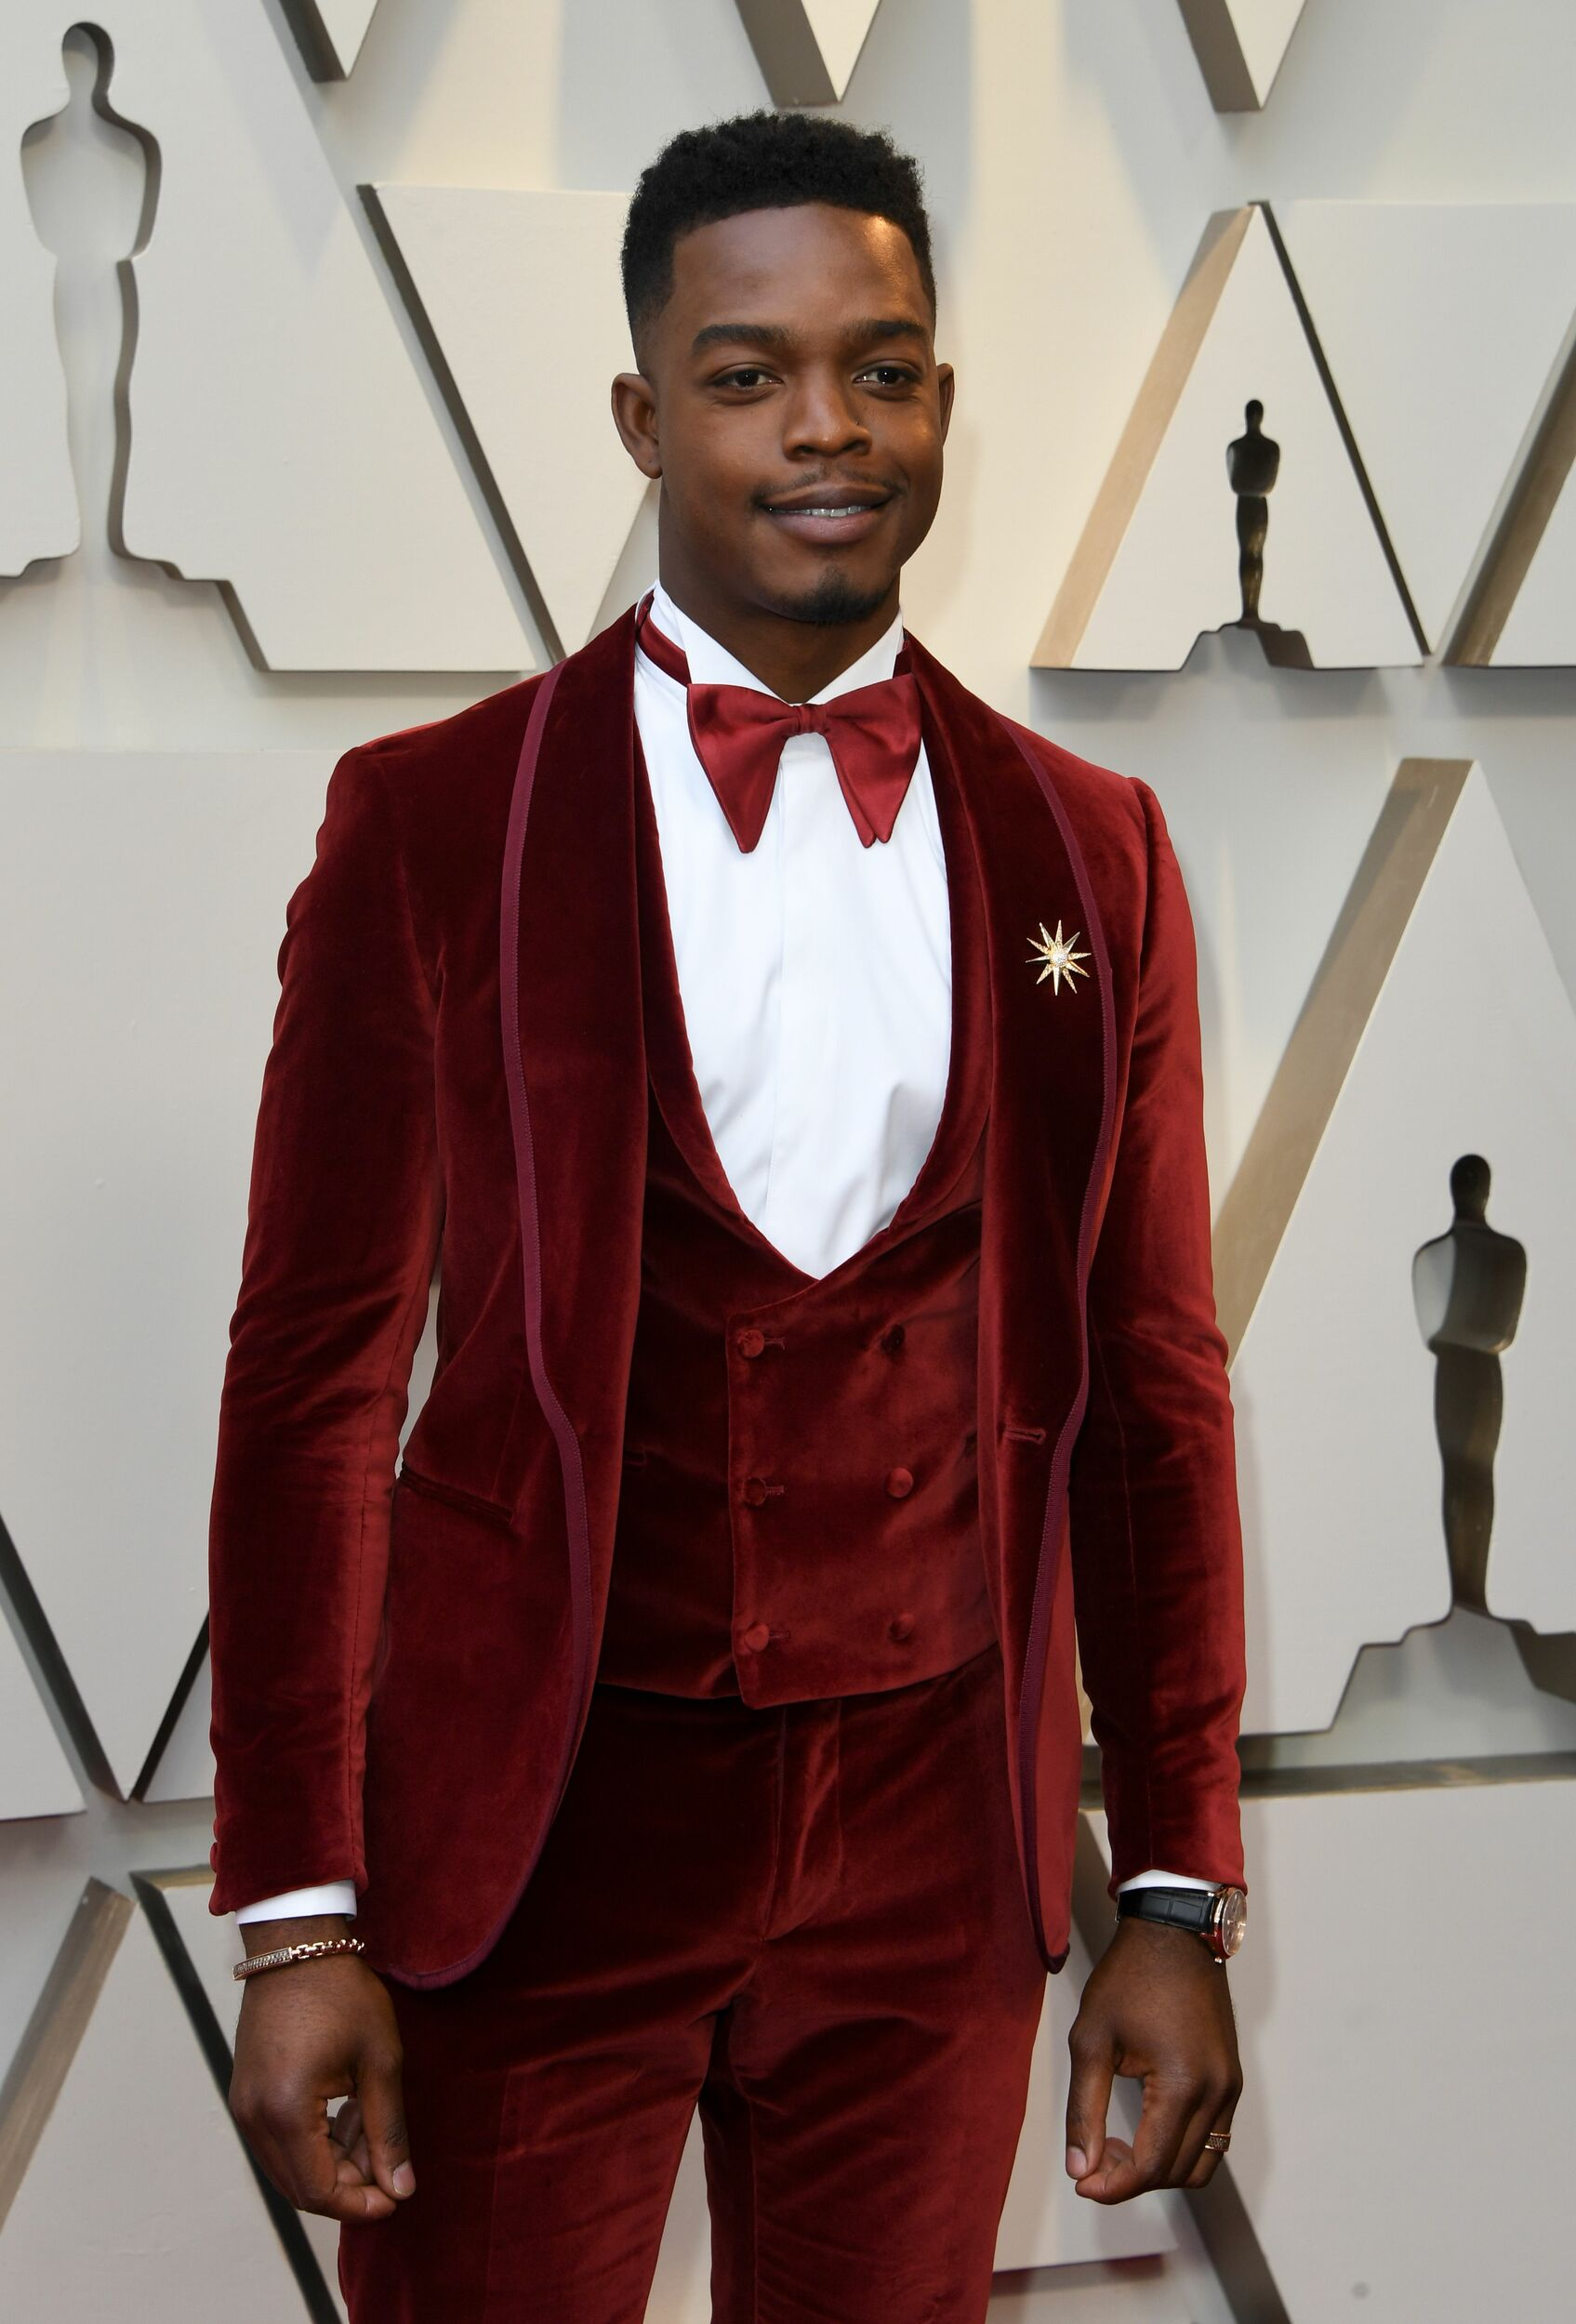 It s not easy to make menswear fun, but Toronto s own Stephan James looks extra-dapper in this custom burgundy velvet three-piece suit from Italian designer Etro.